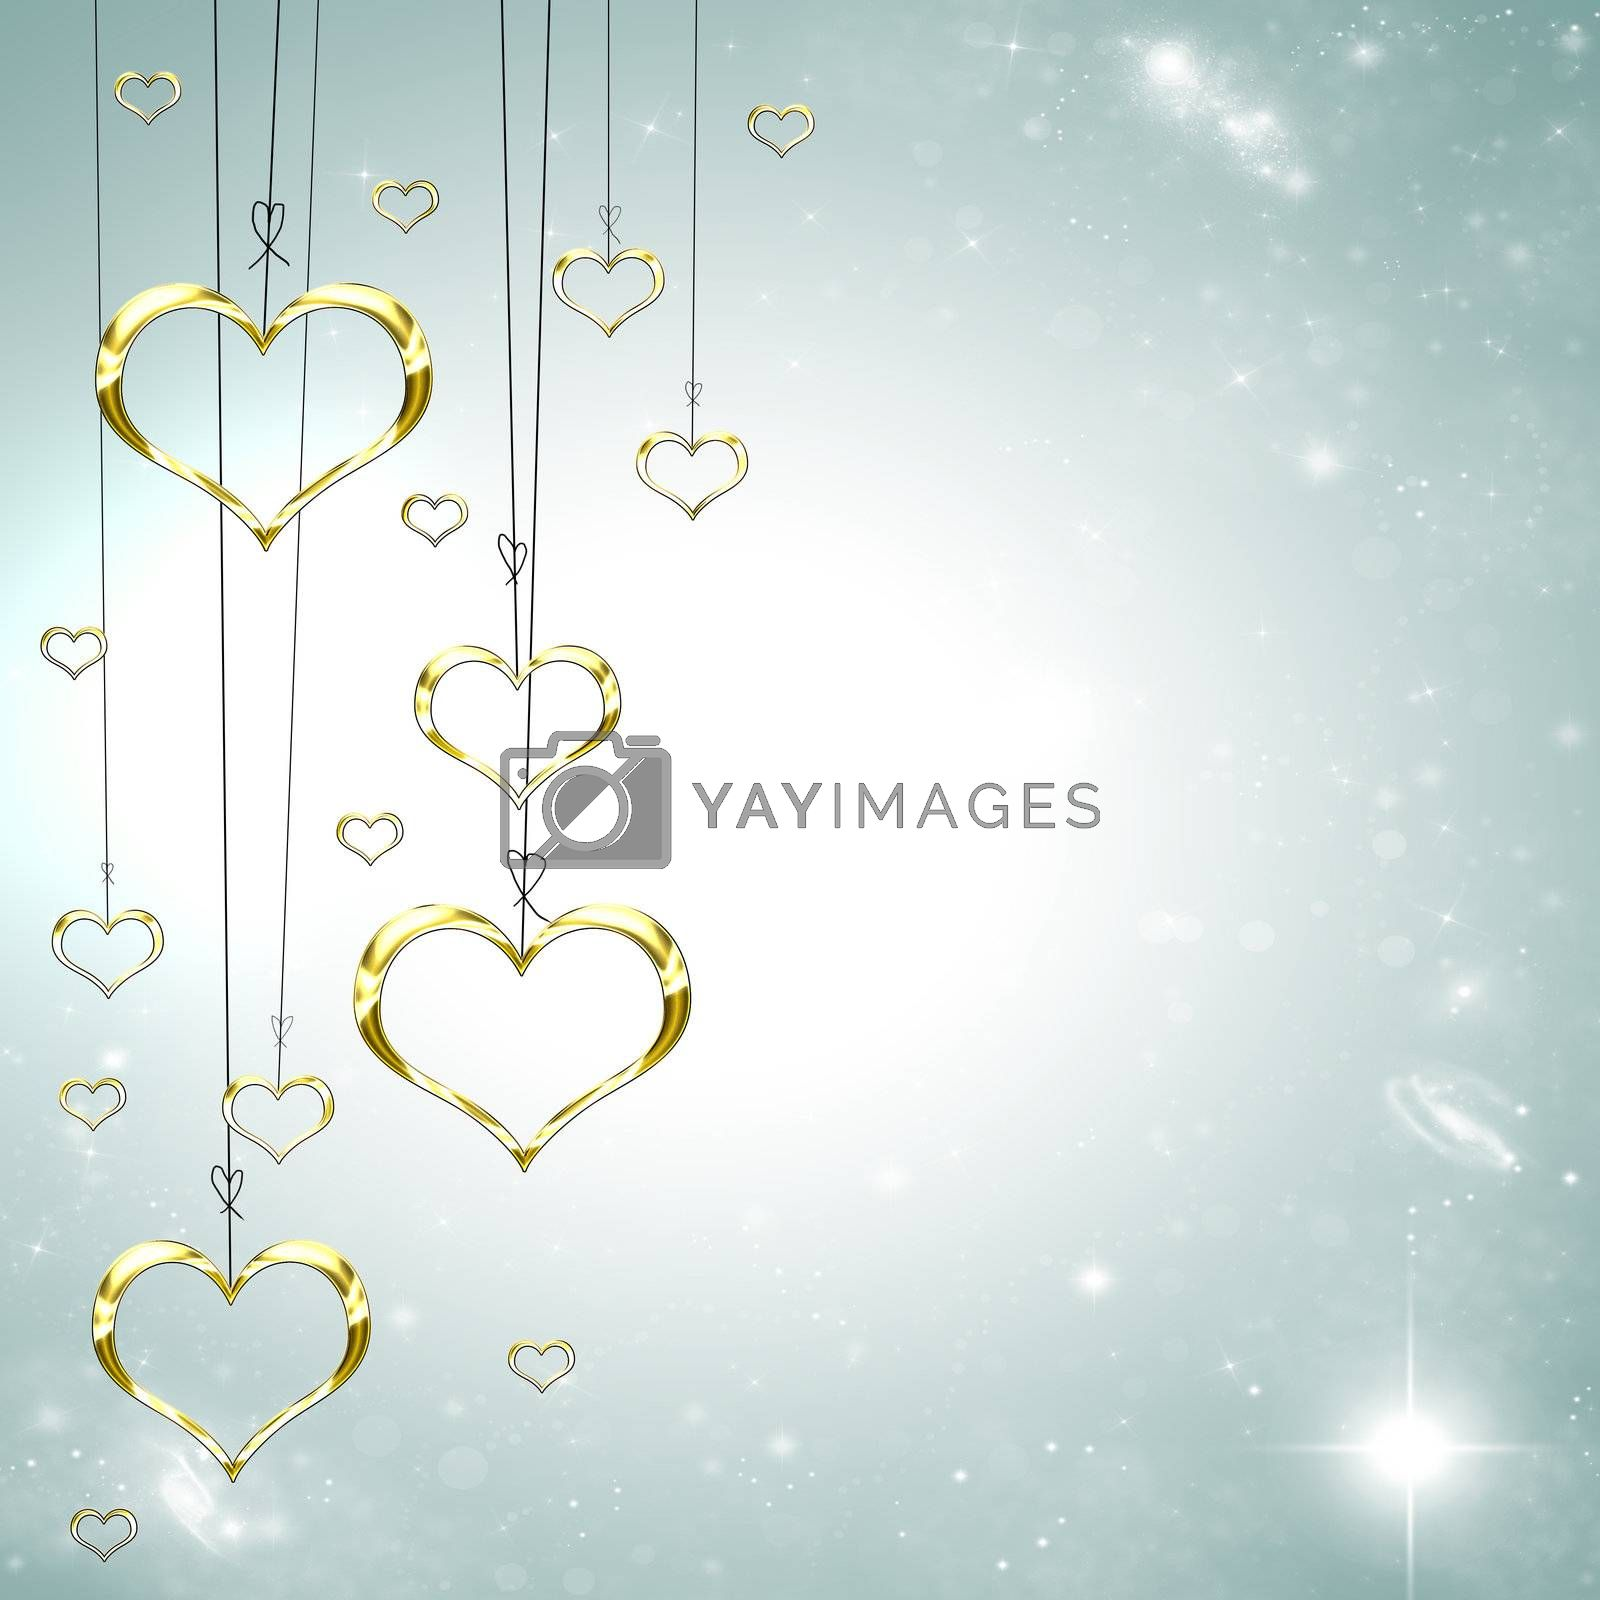 Valenties Day Card with golden hearts on a starry bright background